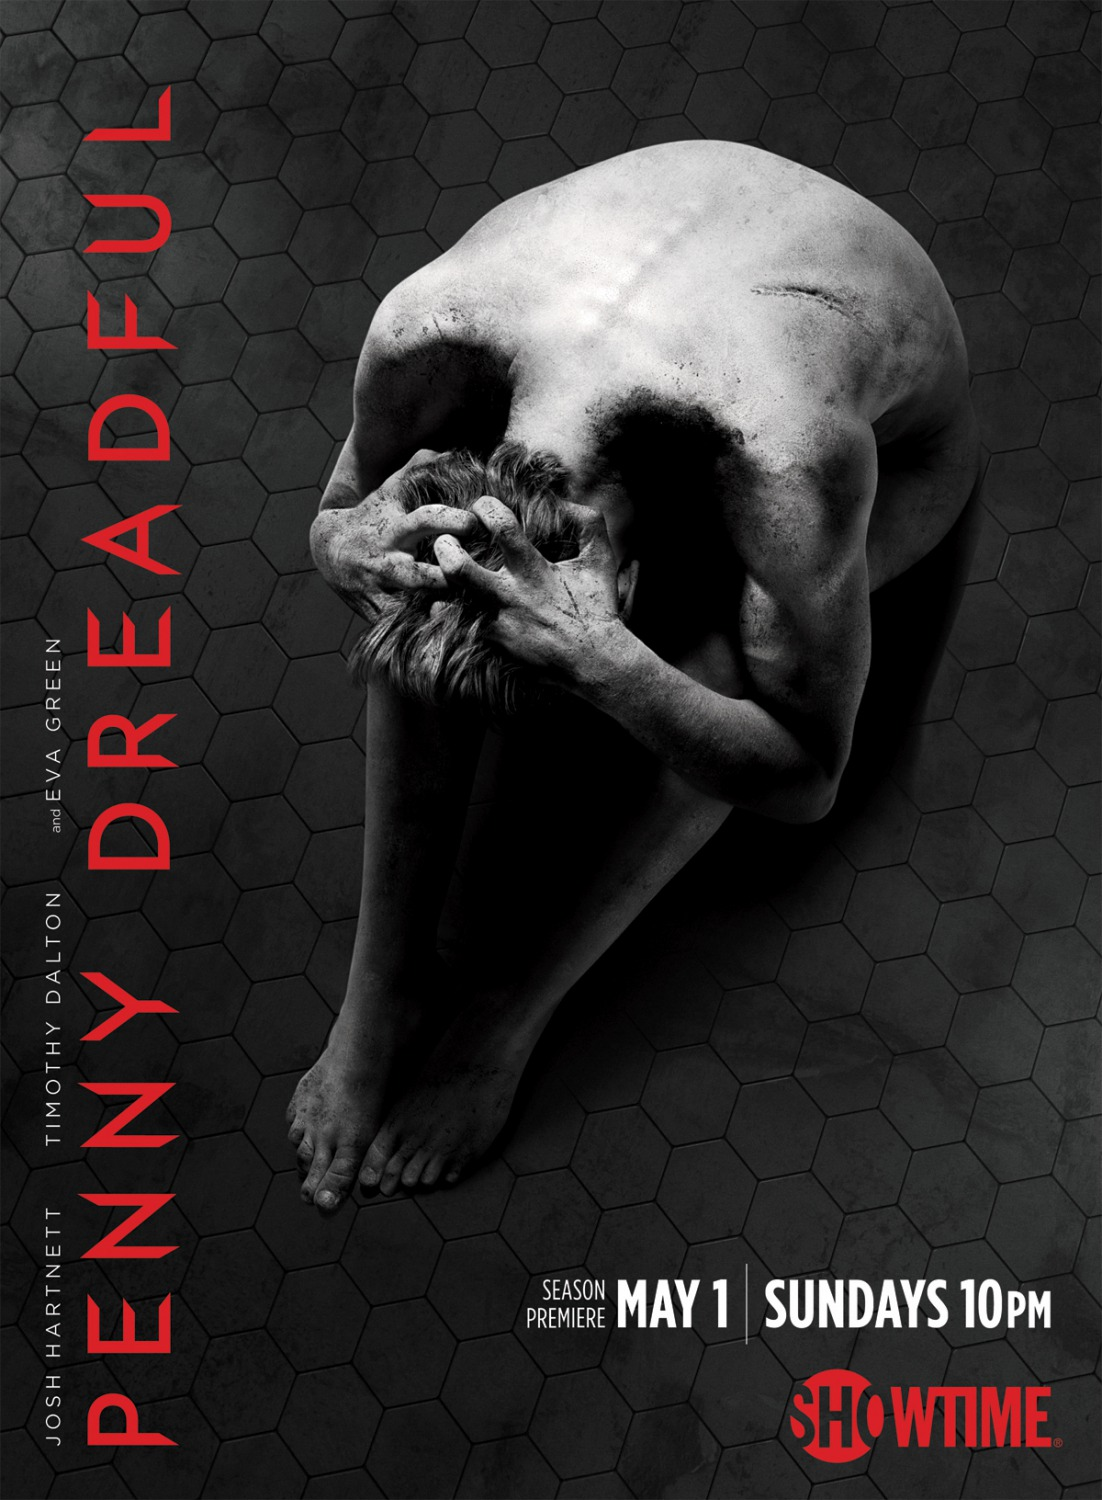 Penny Dreadful | Assista ao novo trailer da 3ª temporada